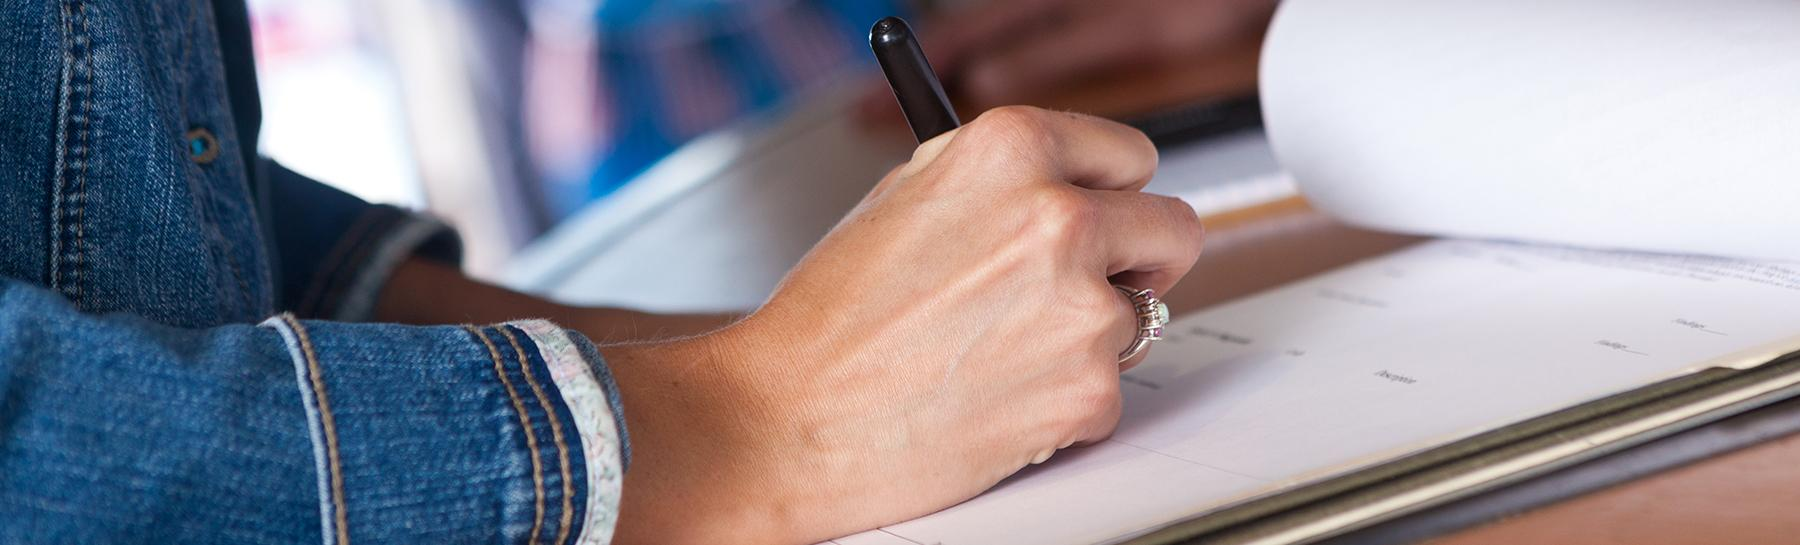 Image of hand writing on a notepad.